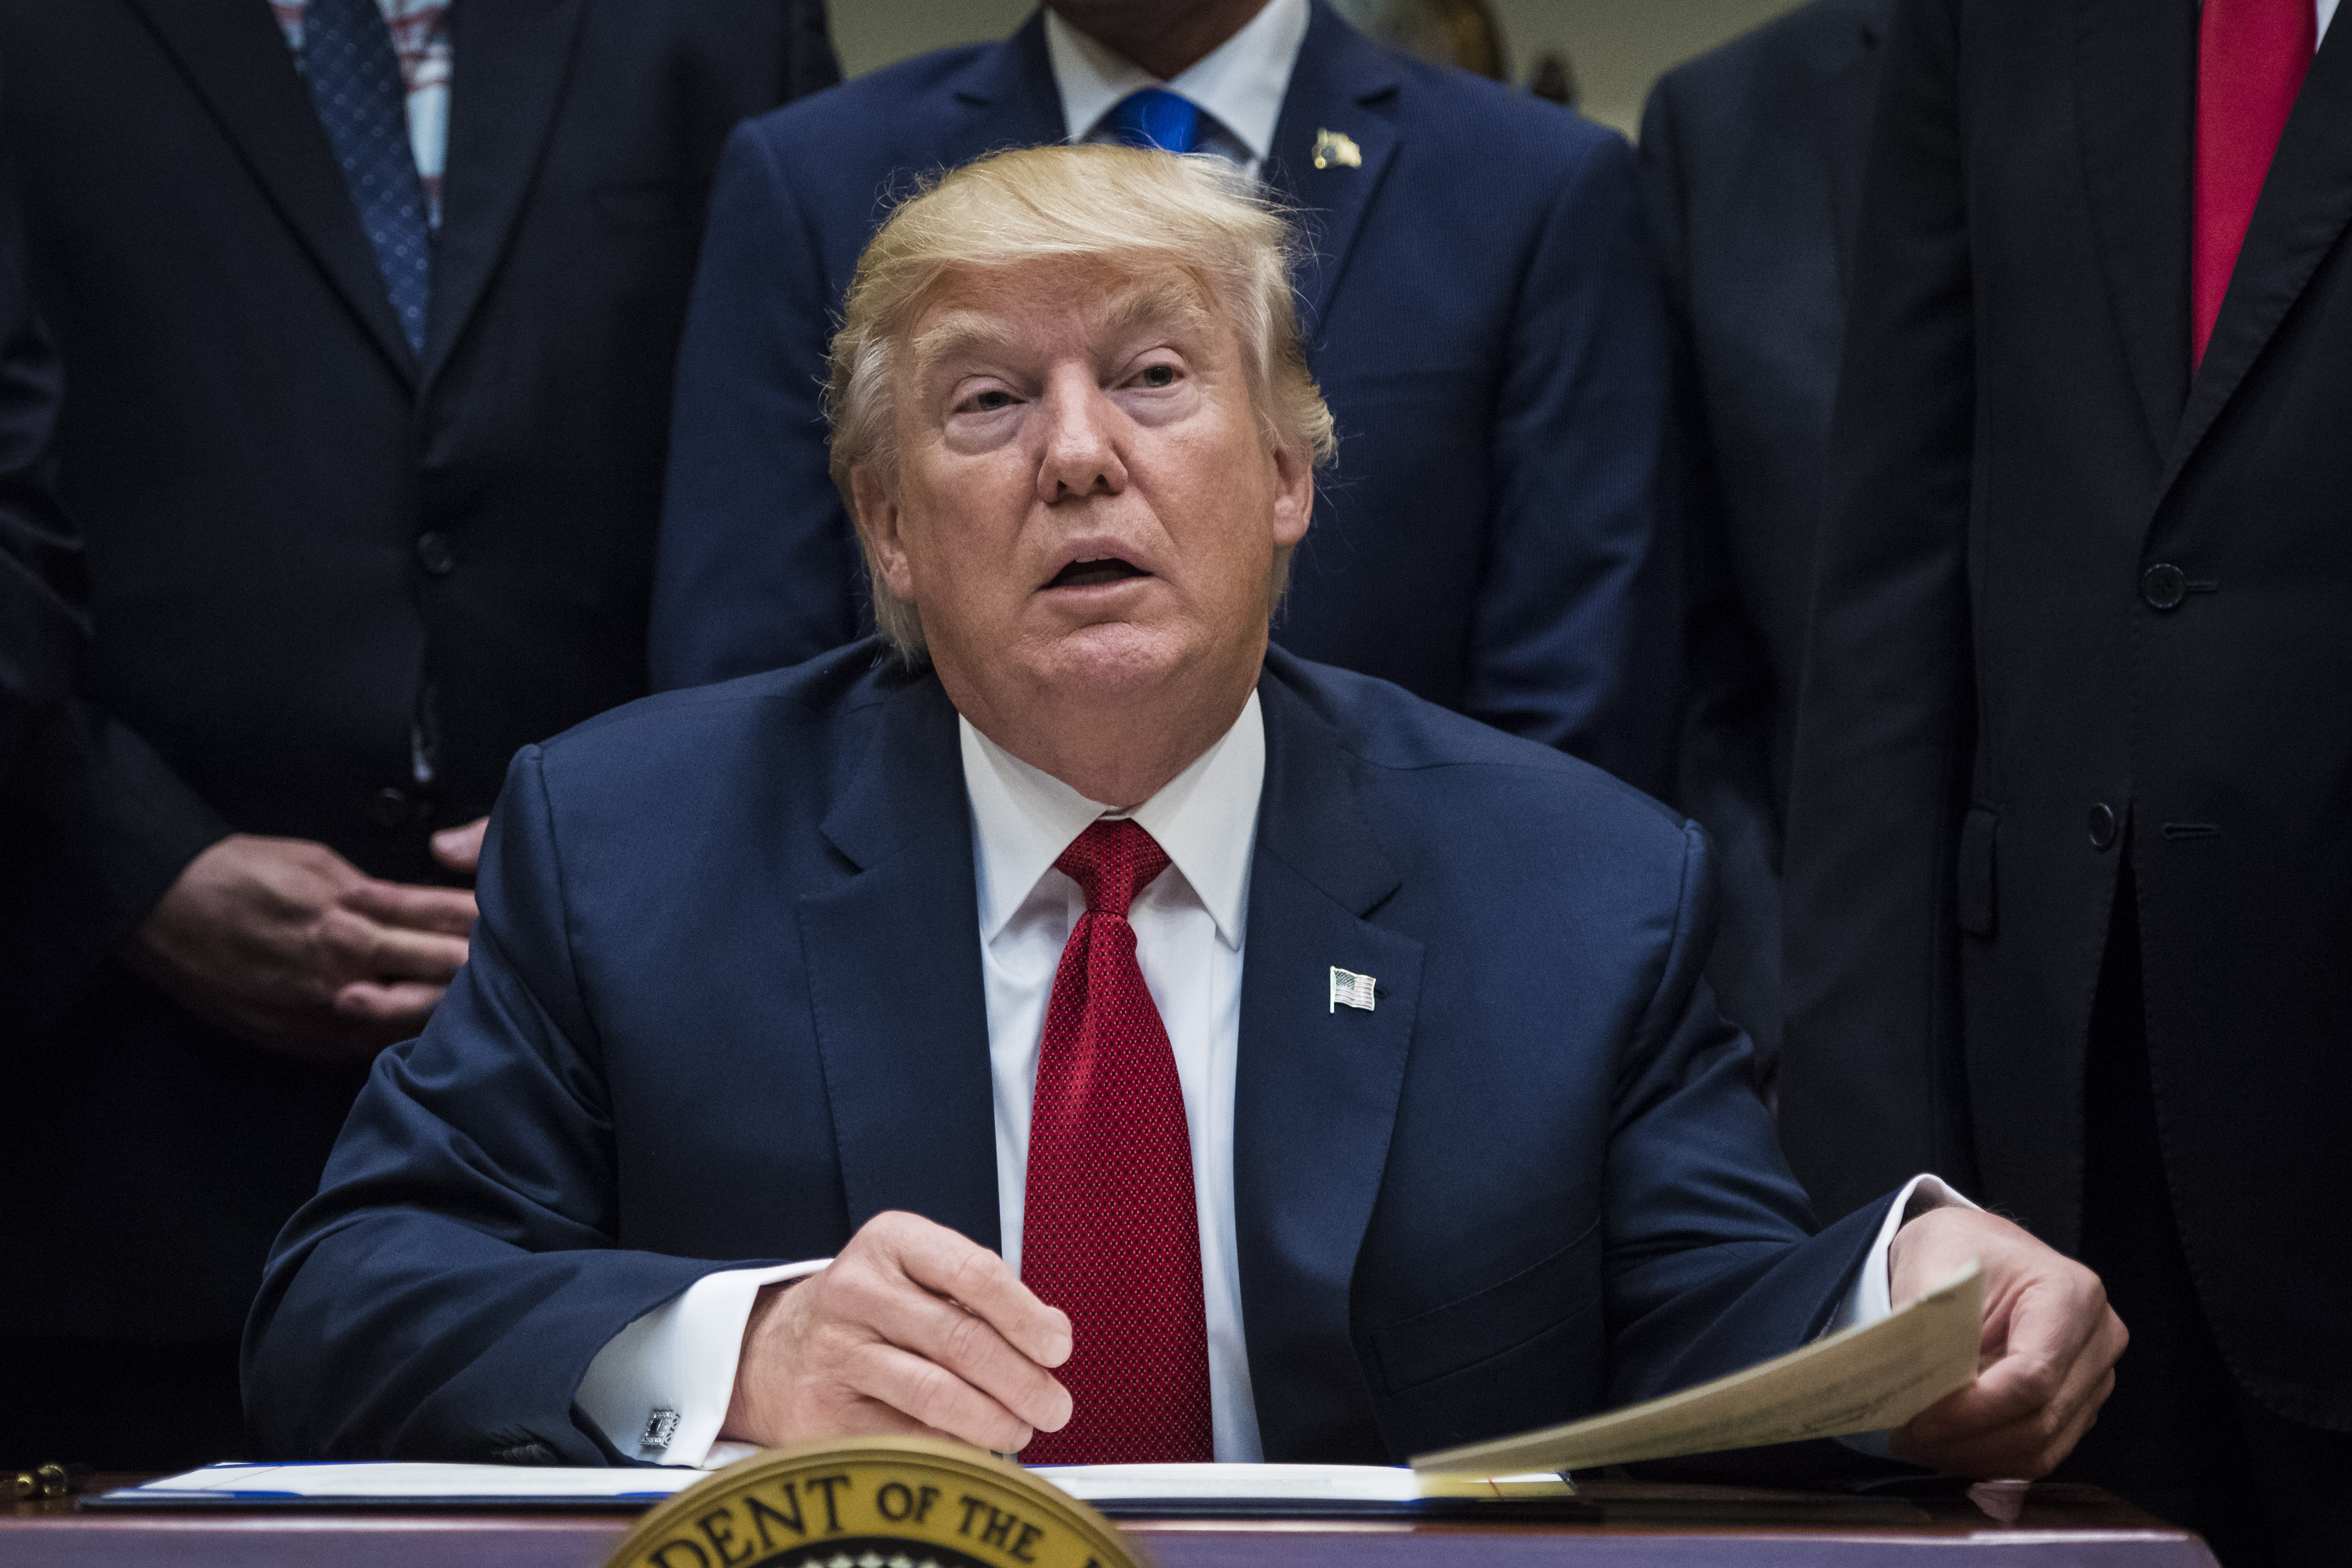 President Donald Trump talks about the Veterans Choice Program Extension and Improvement Act before signing it in the Roosevelt Room of the White House in Washington, DC on Wednesday, April 19, 2017.